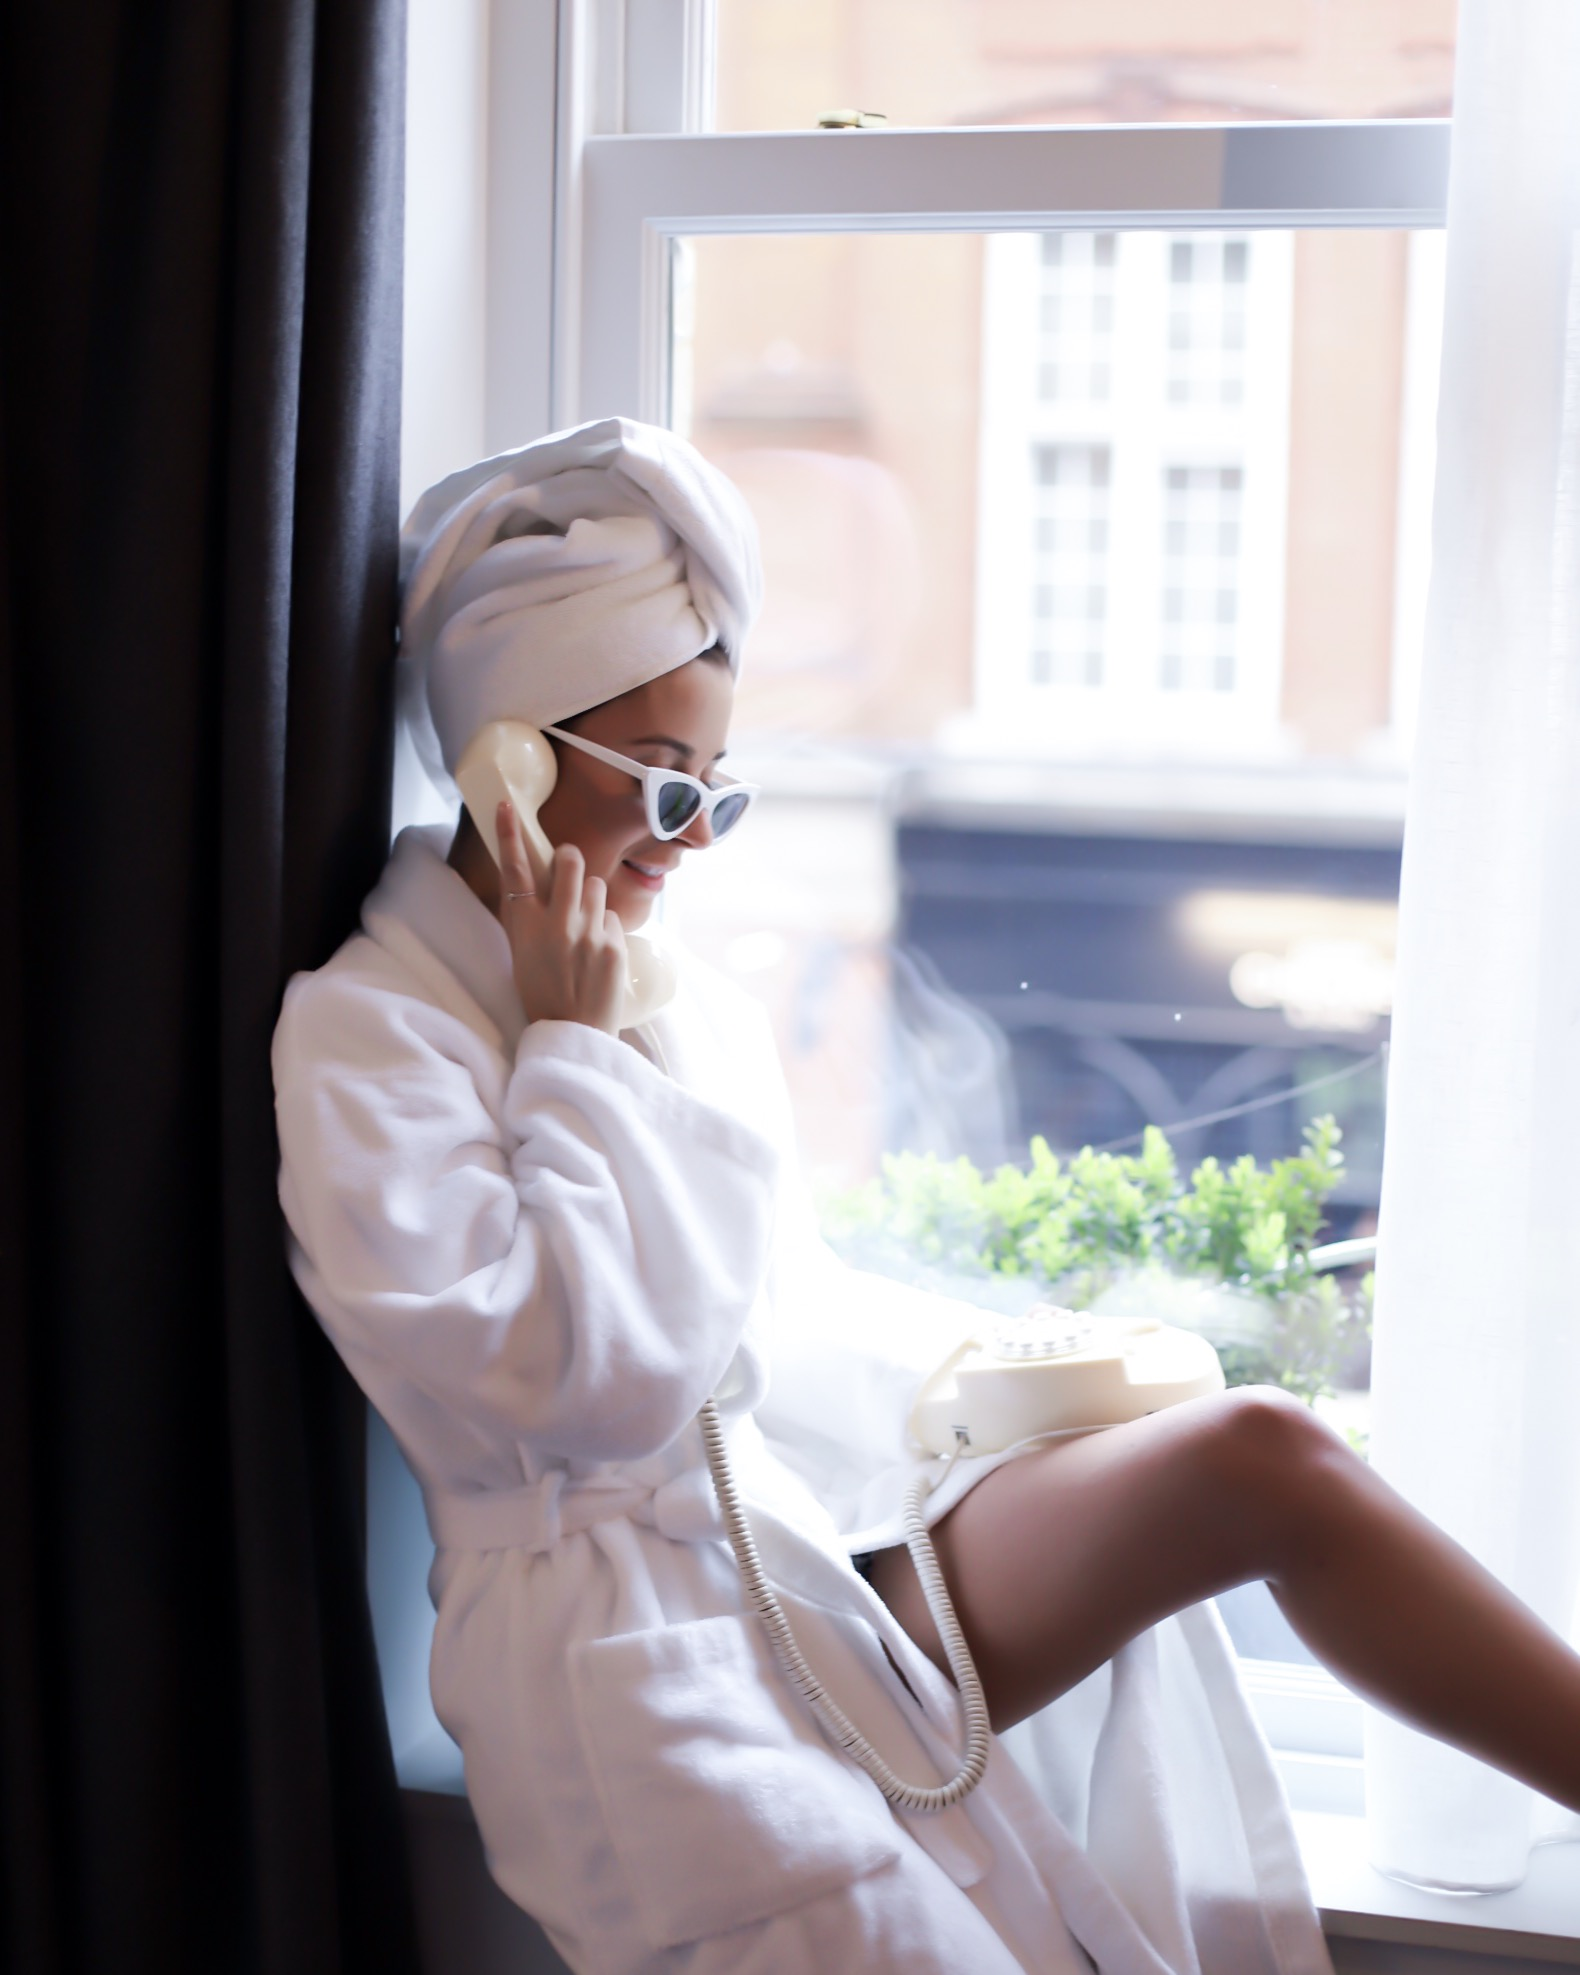 Henrietta Hotel, Covent Garden, Eat Life With Style, hôtel, londres, room service